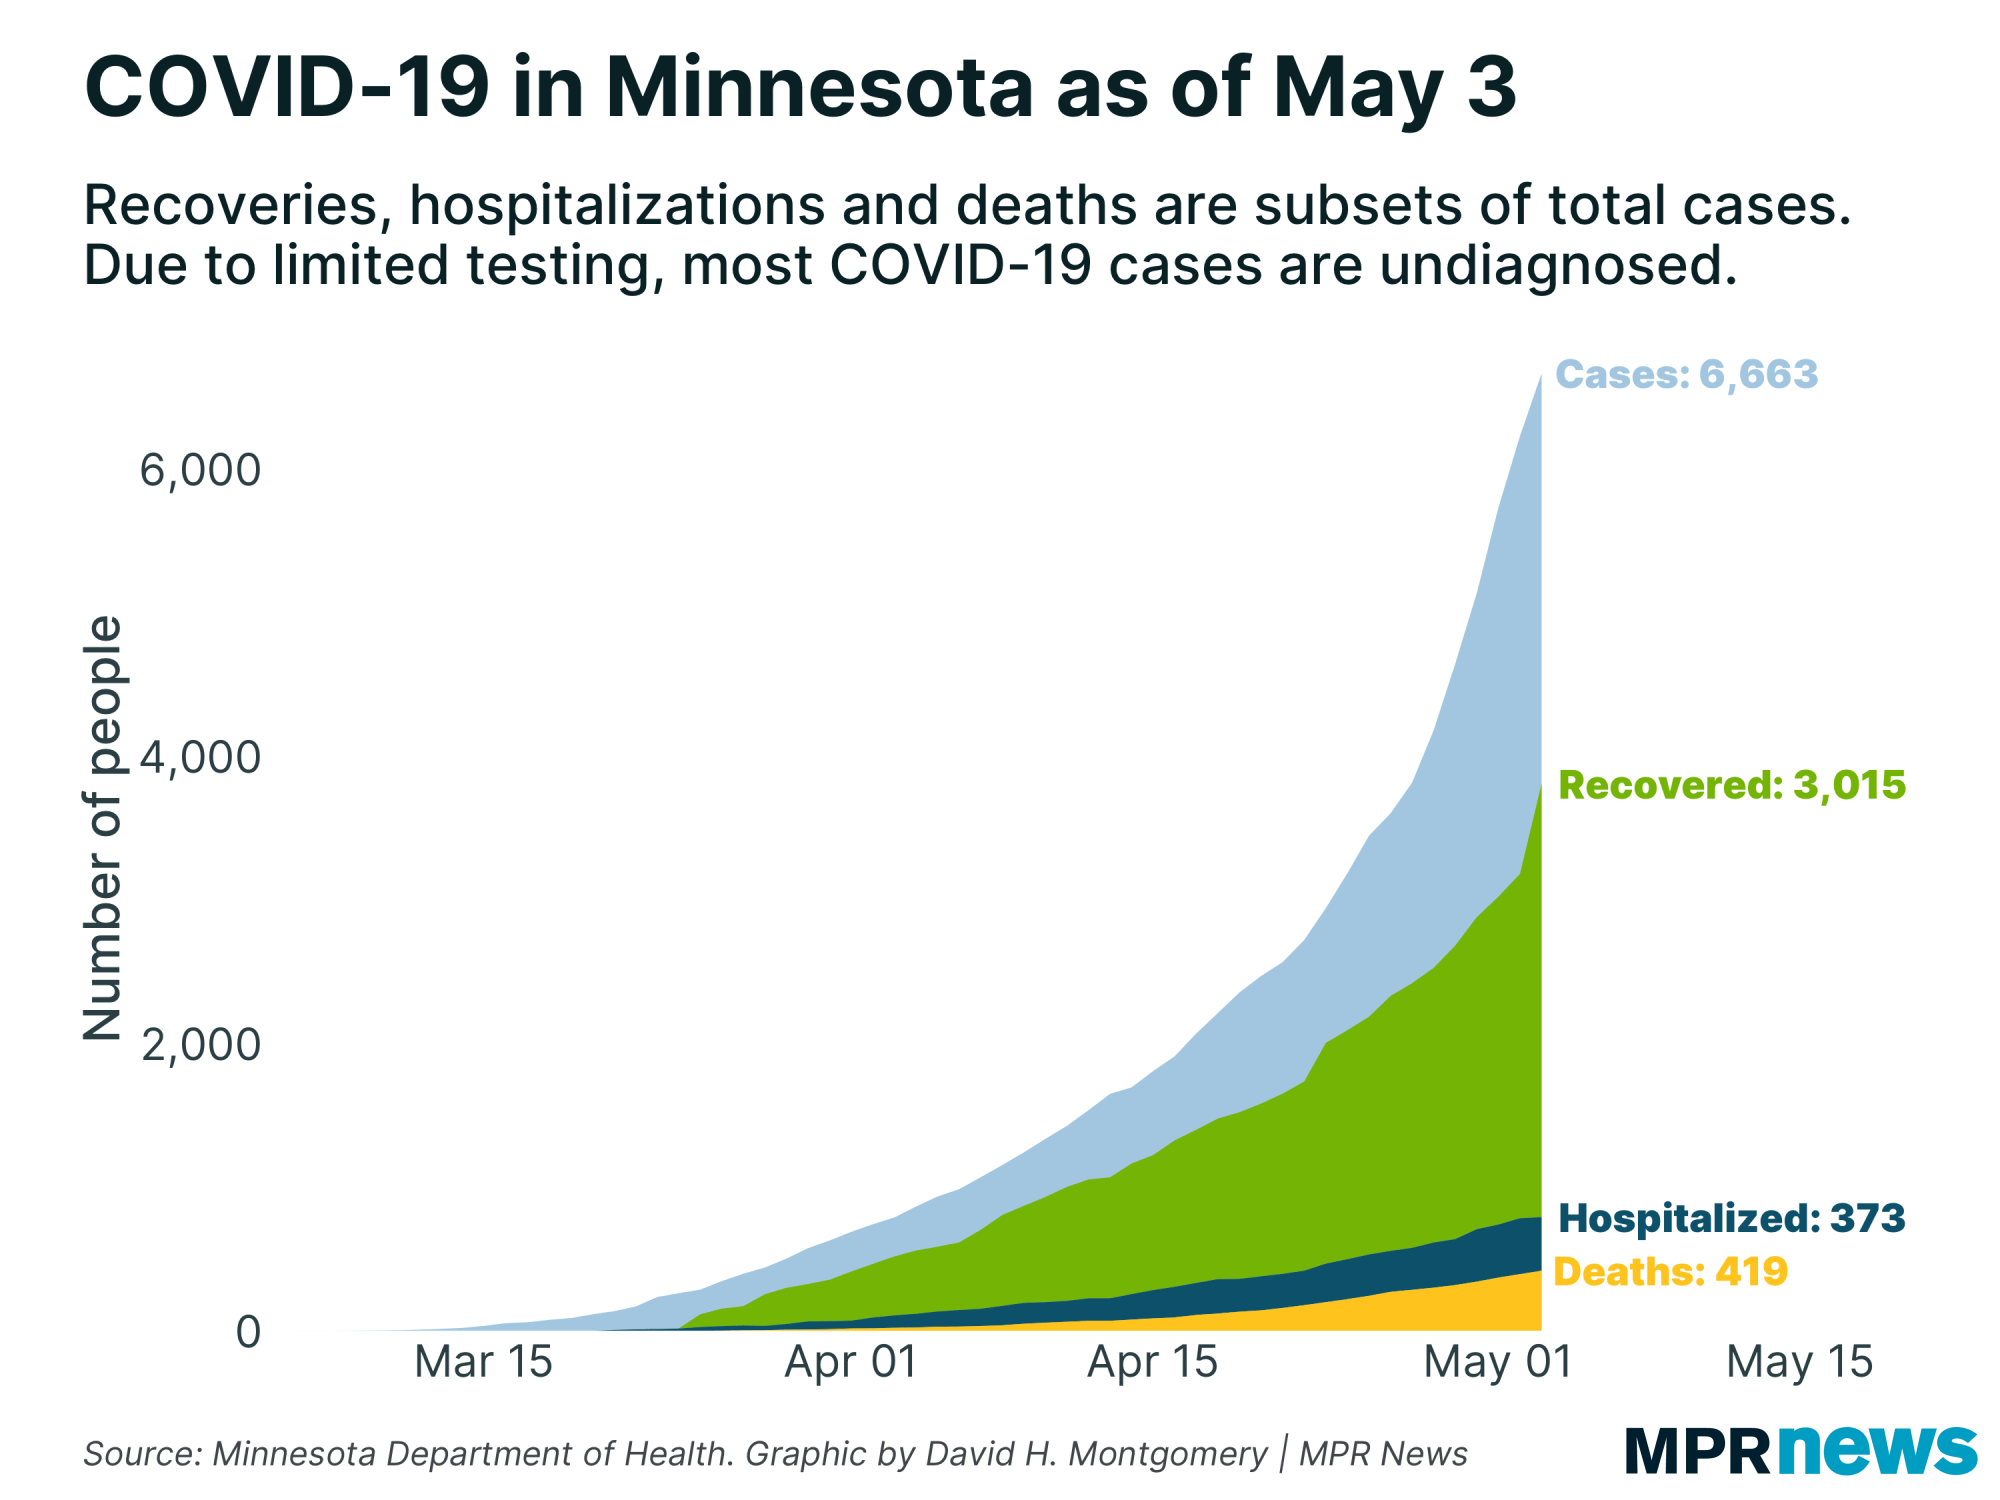 A graph showing the number of COVID-19 positive cases to date